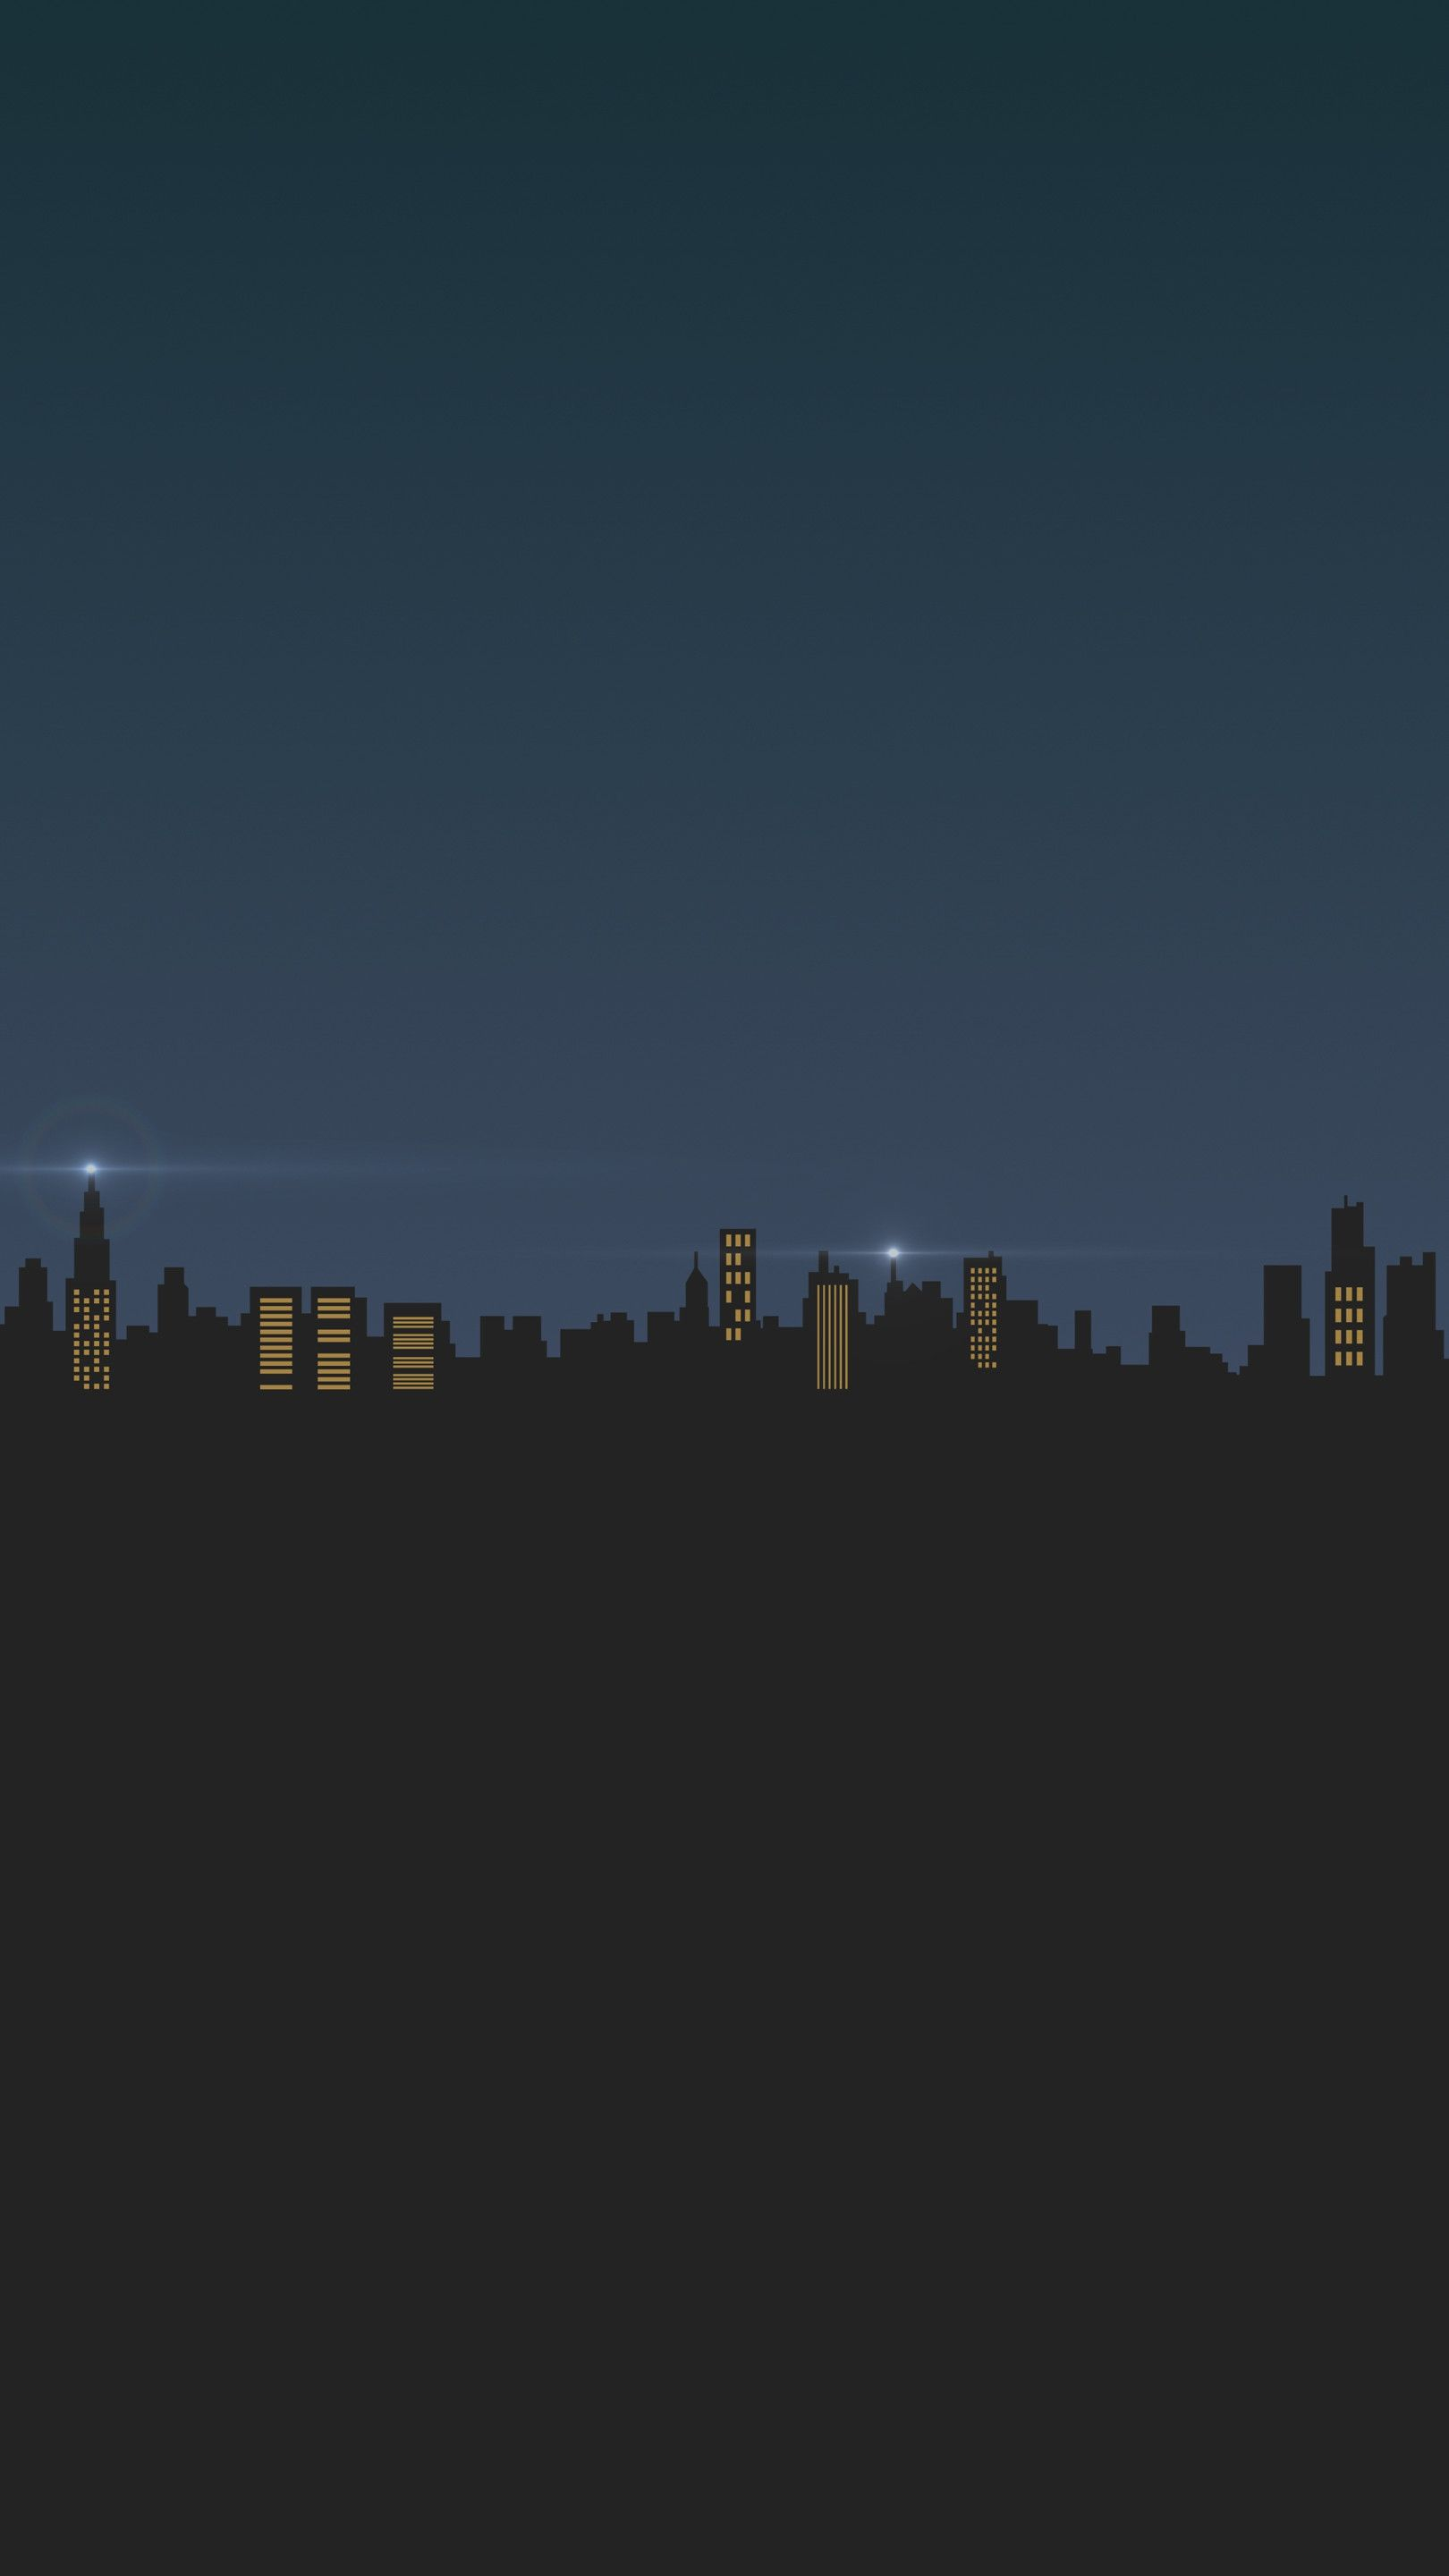 Minimal Dark City Iphone Wallpaper In 2019 City Iphone